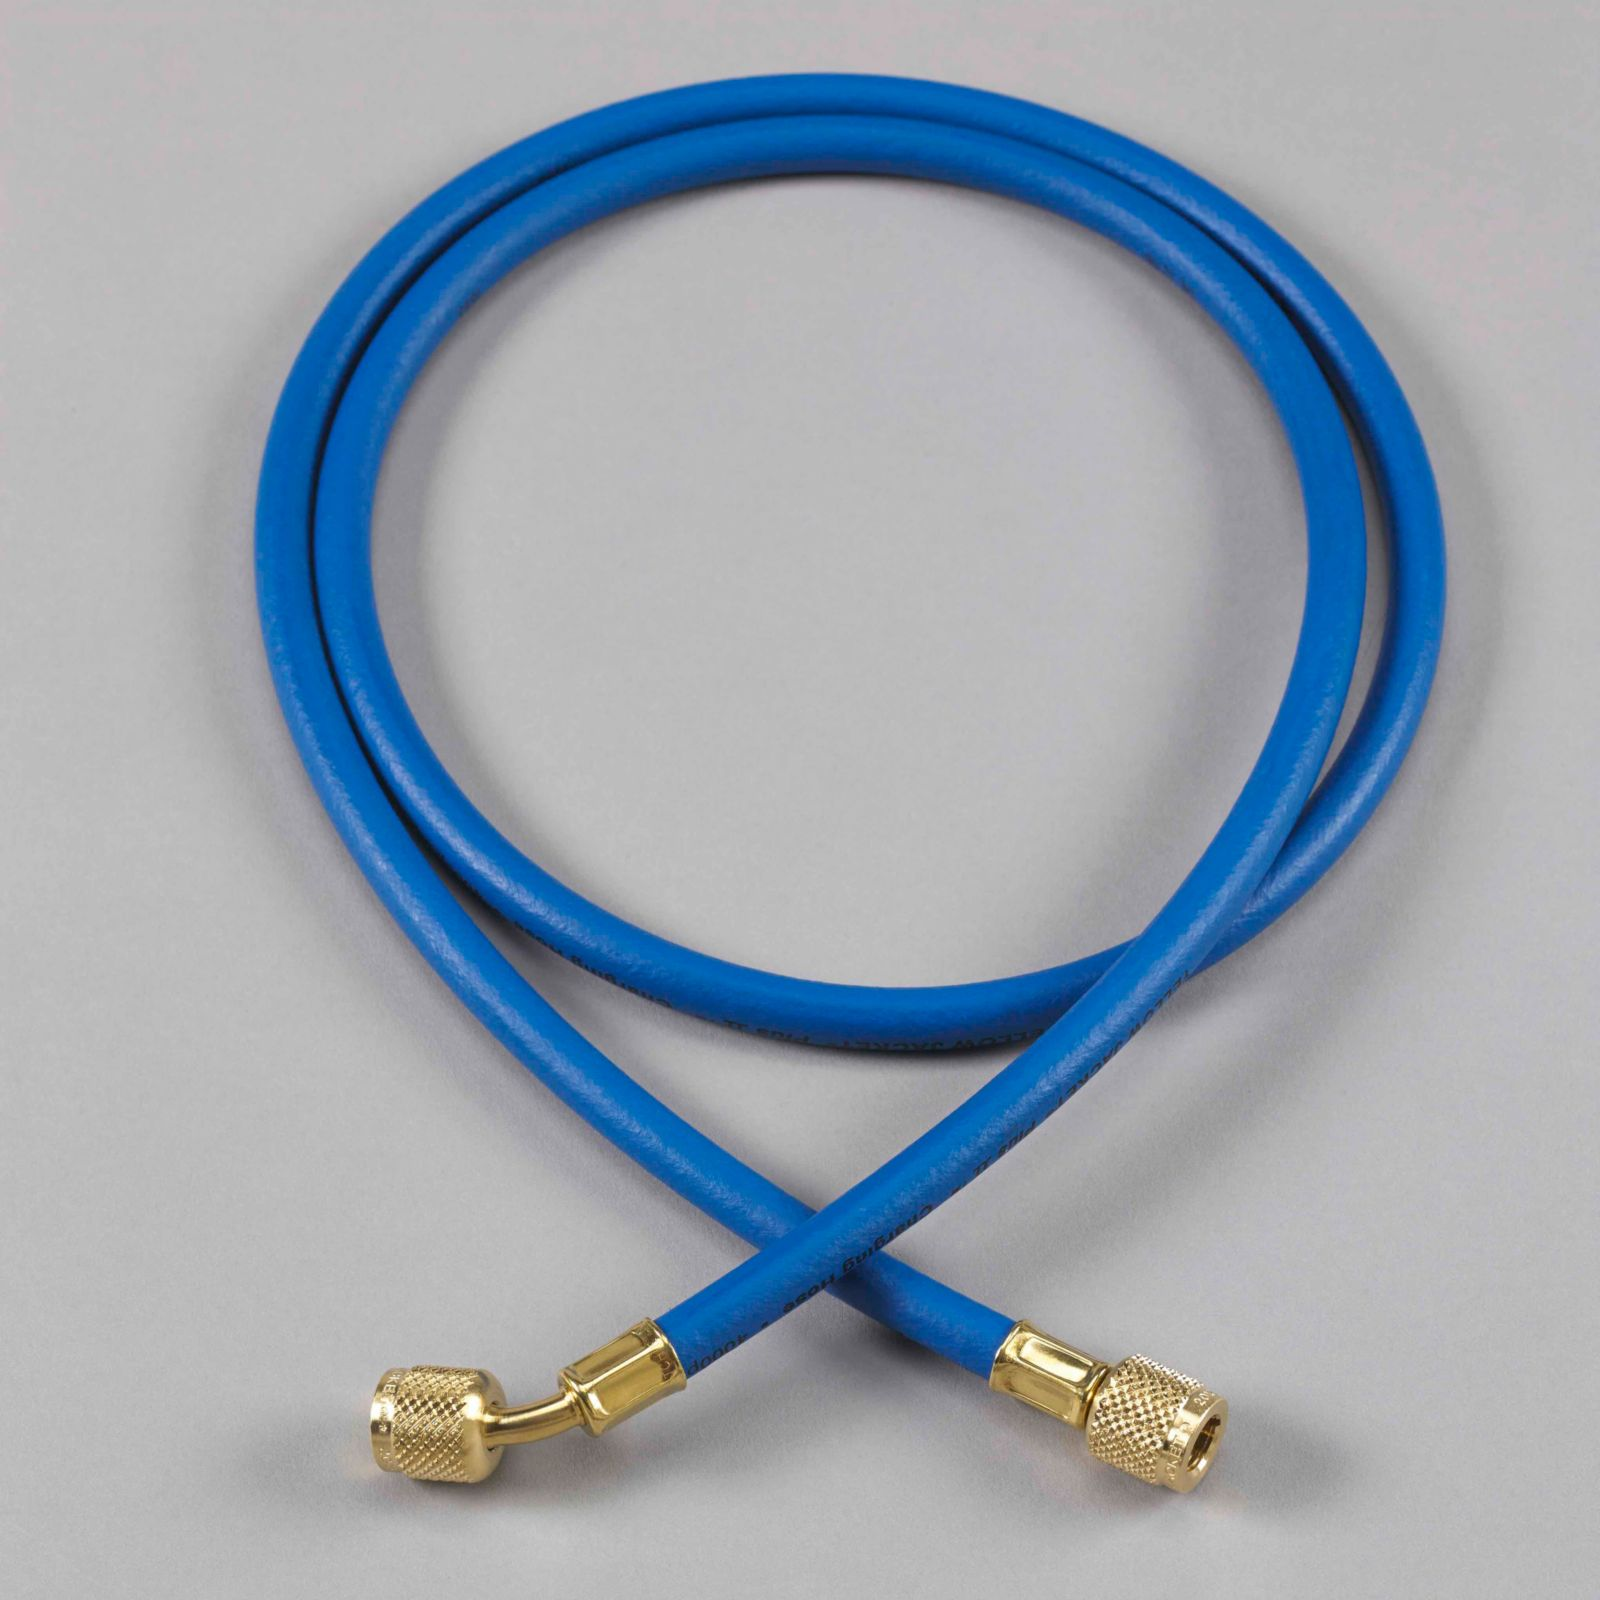 "Yellow Jacket 21236 - 36"" Blue Hose HAV Standard Fitting Plus II 1/4"" Charging Hose"